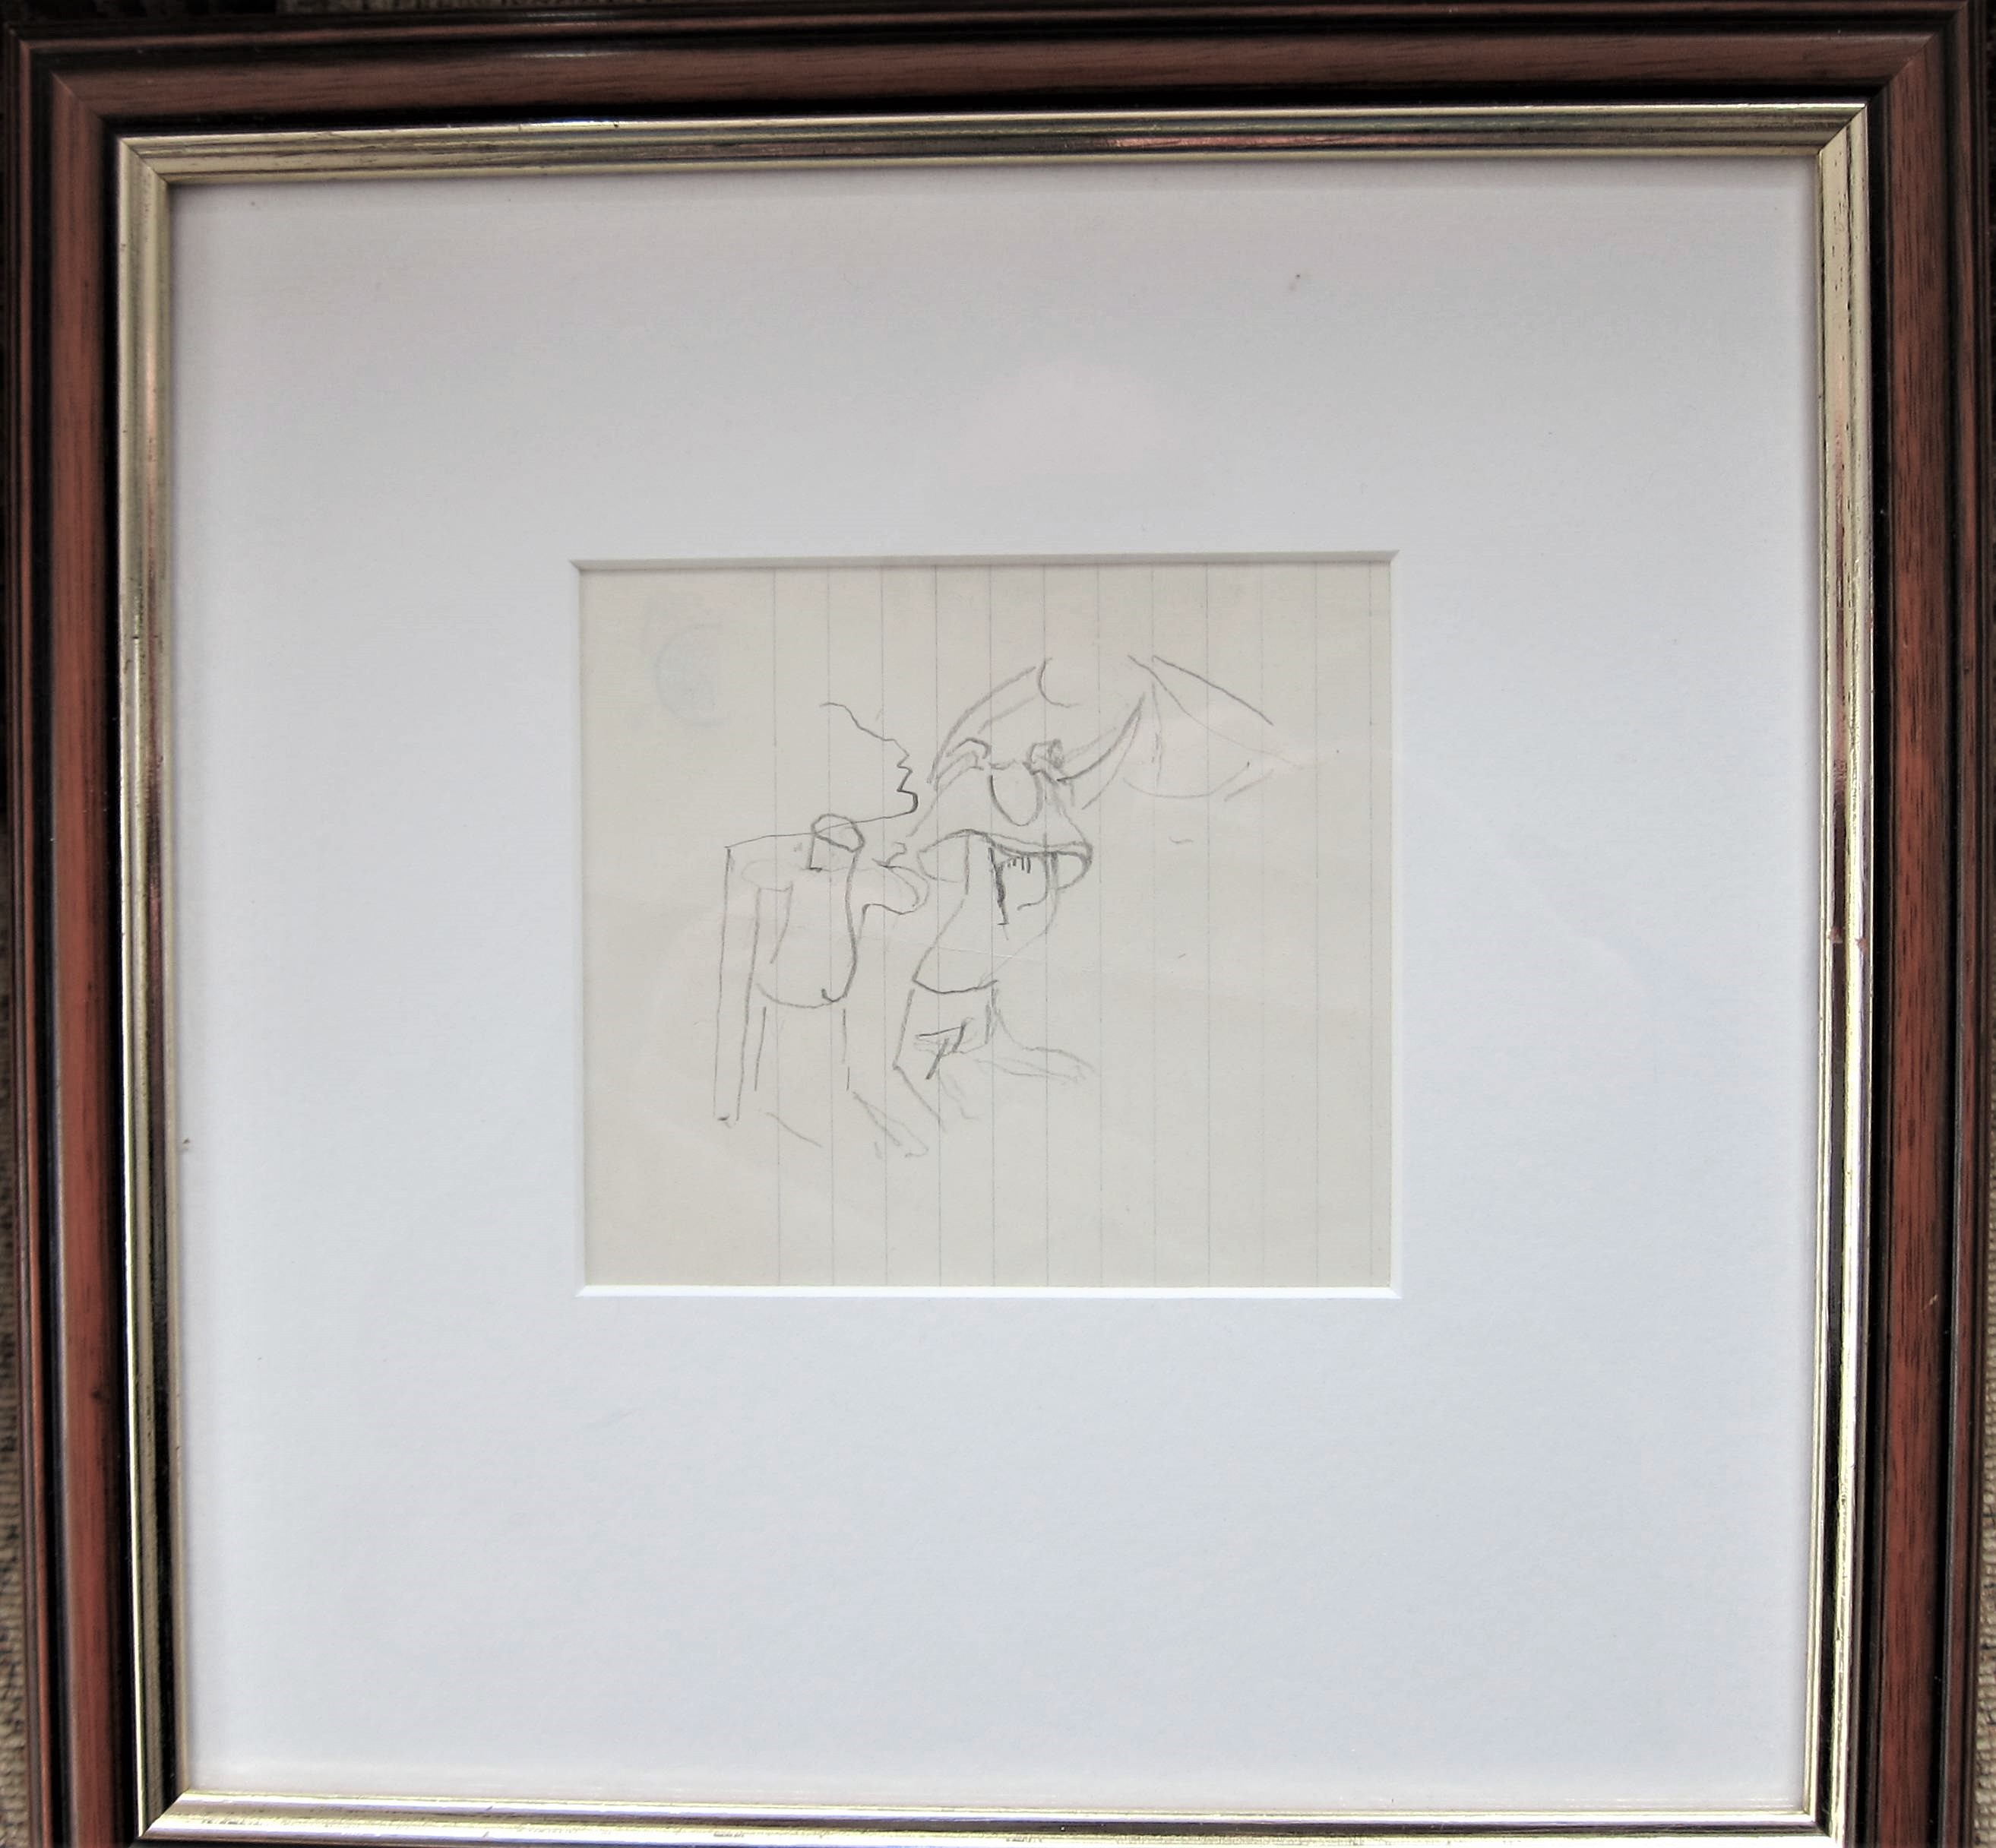 STANLEY SPENCER R.A. [1891-1959]. Figure Study. pencil on paper. studio stamp on reverse. 11 x 12 cm - Image 2 of 2